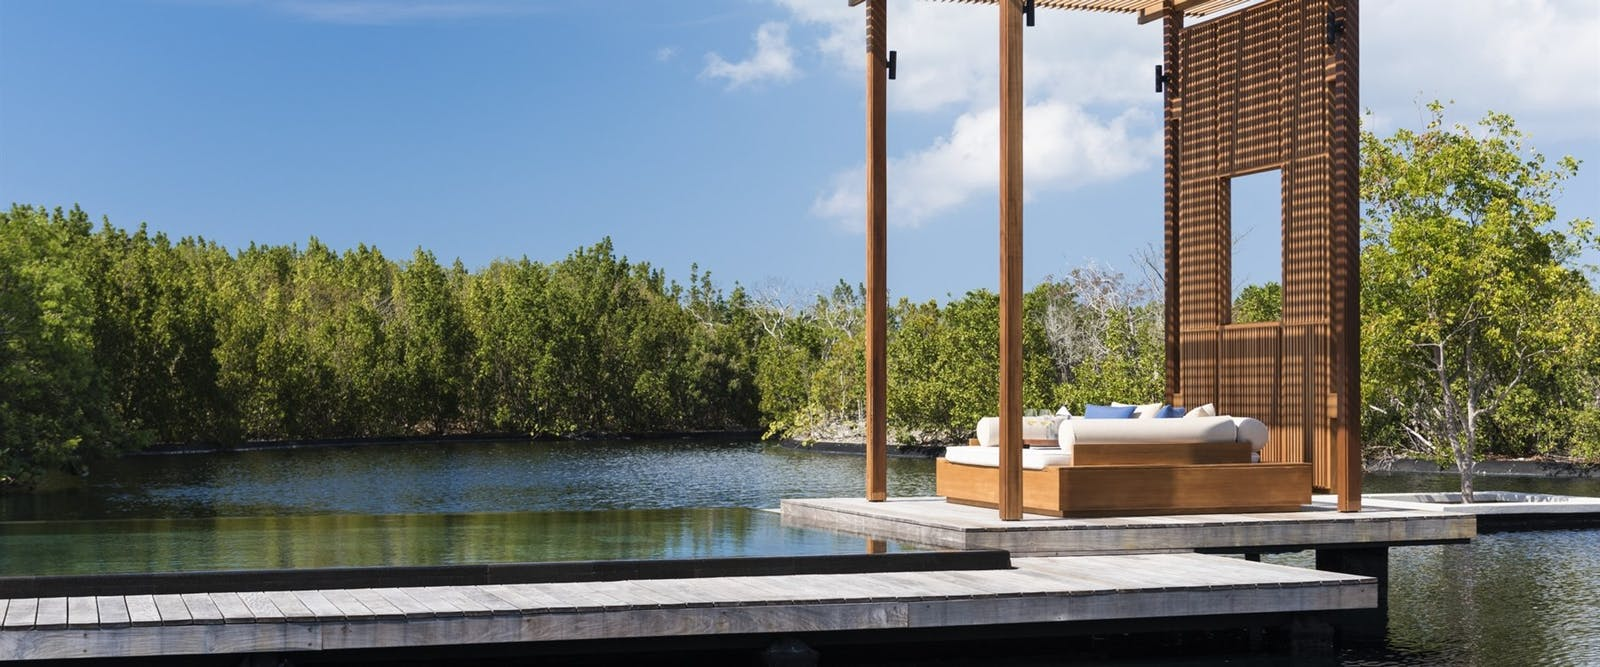 Villa 9 at Amanyara, Turks and Caicos